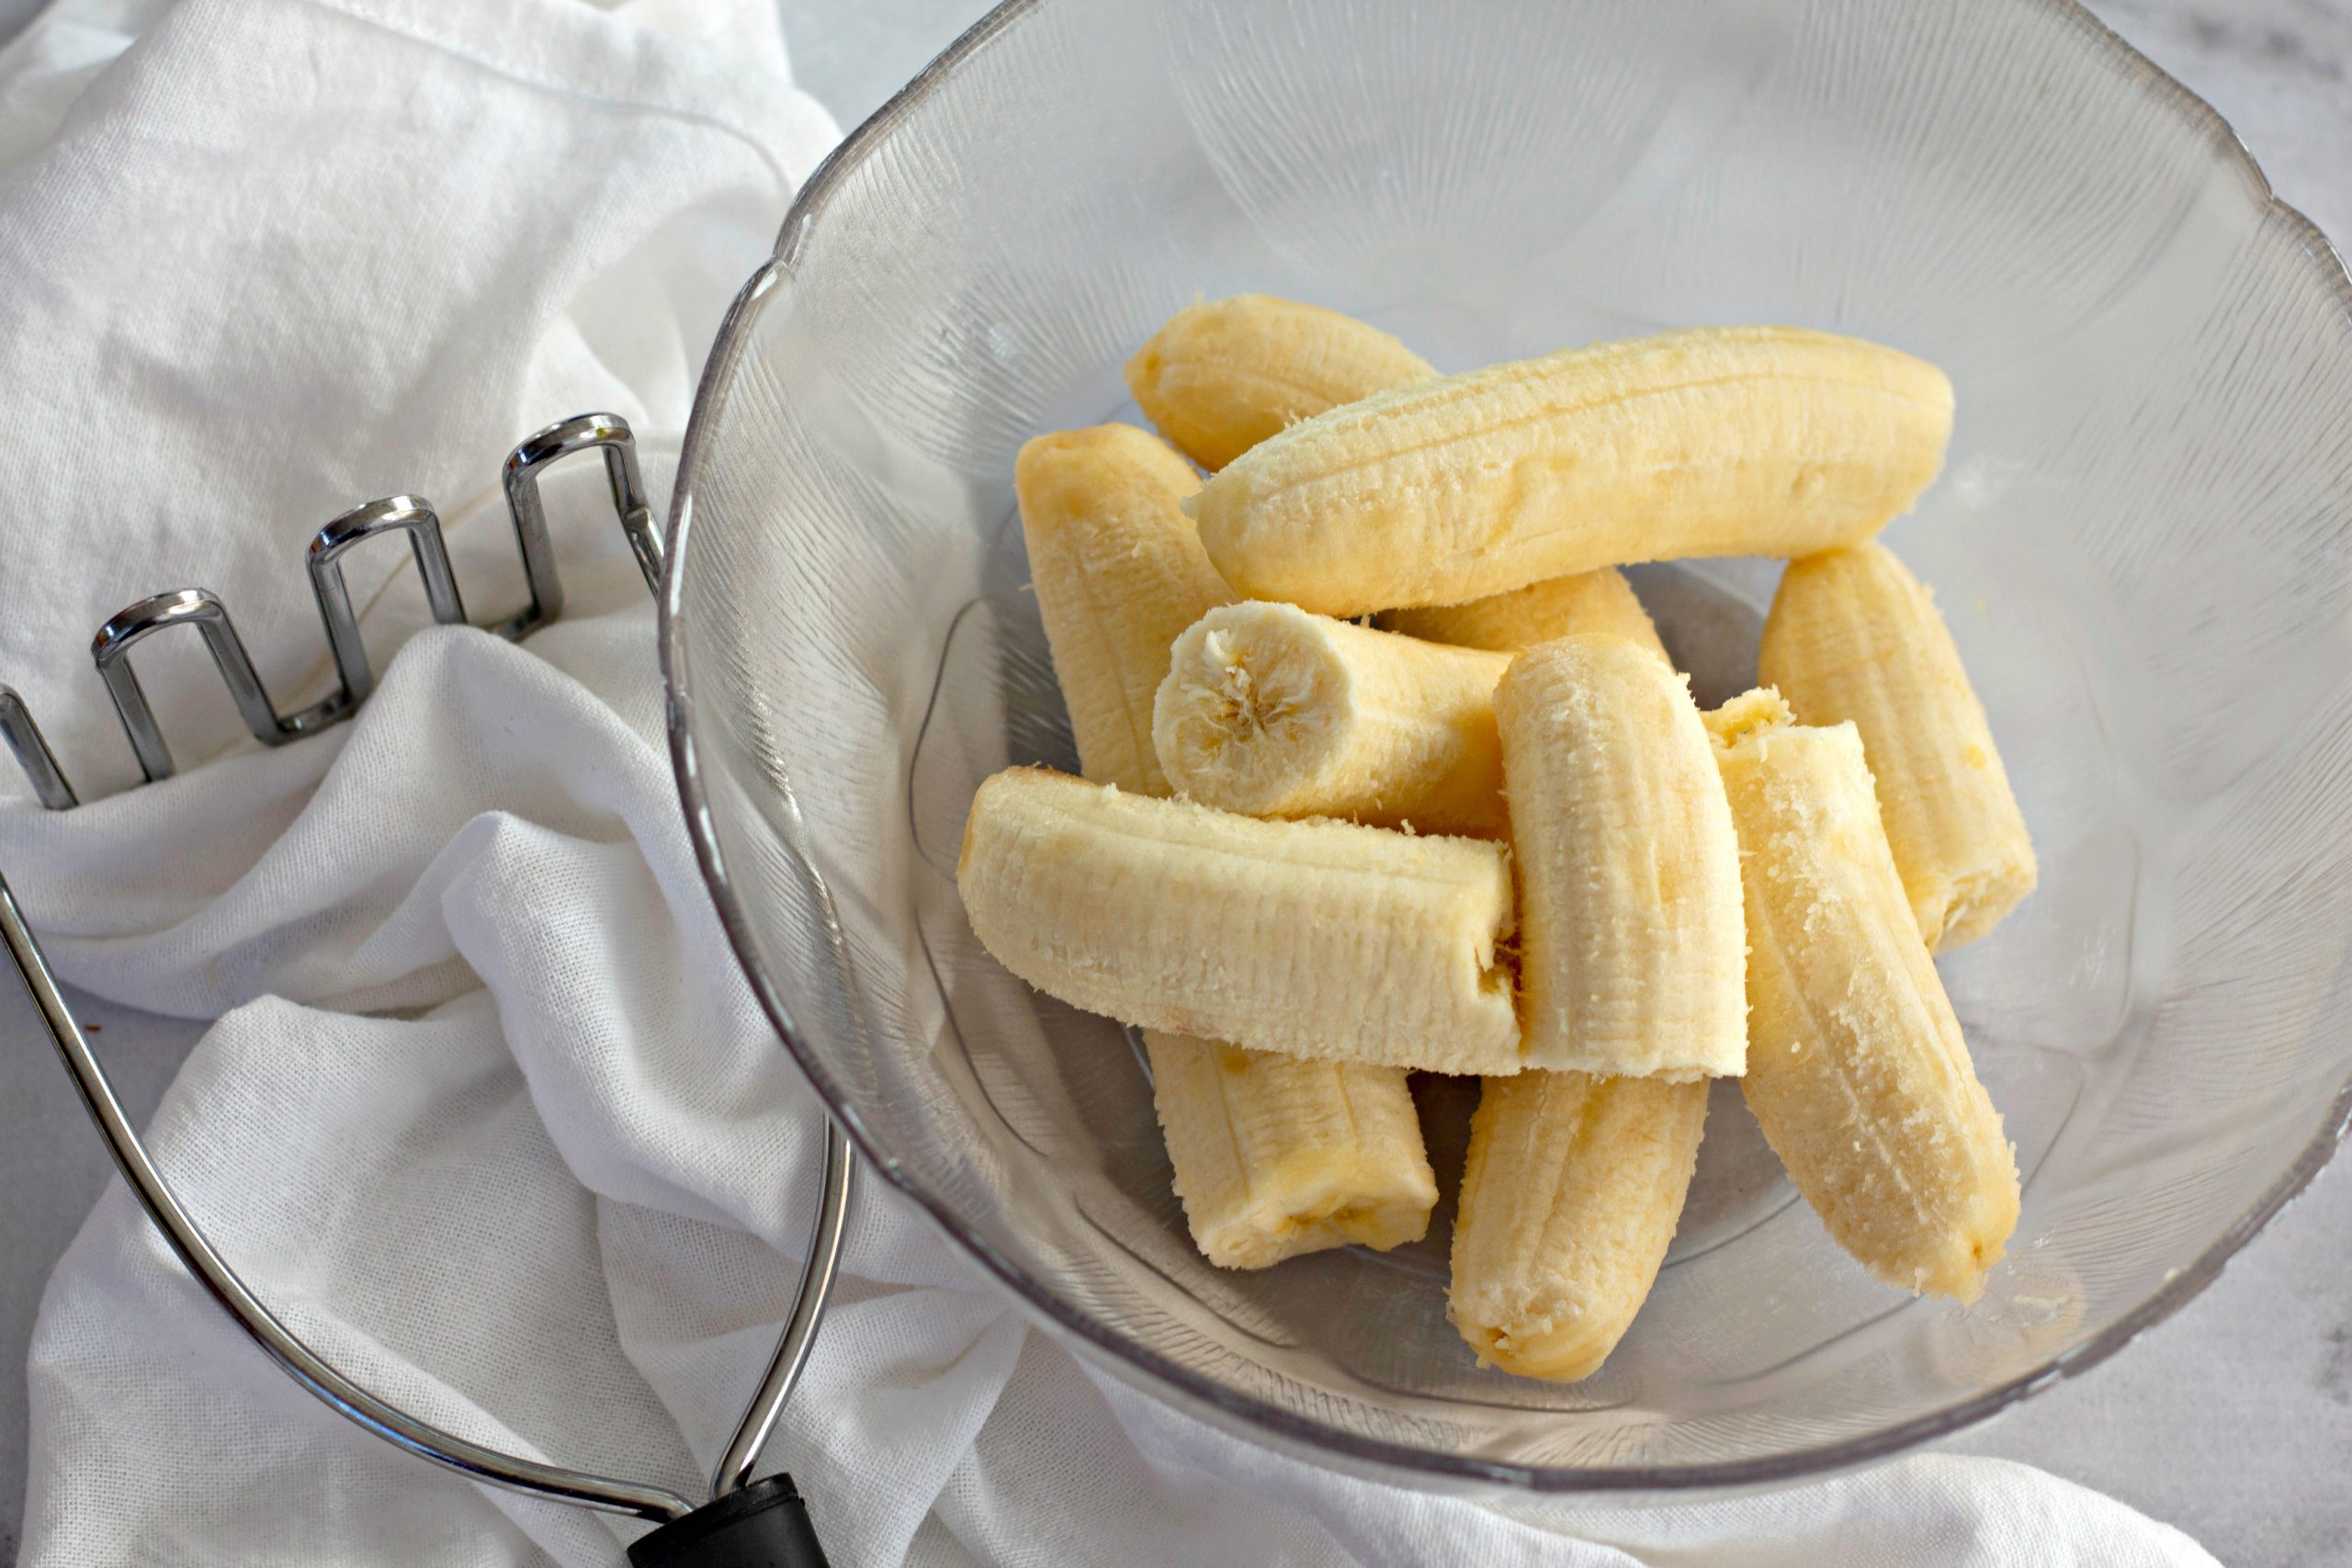 an image of a bowl of bananas and a potato masher